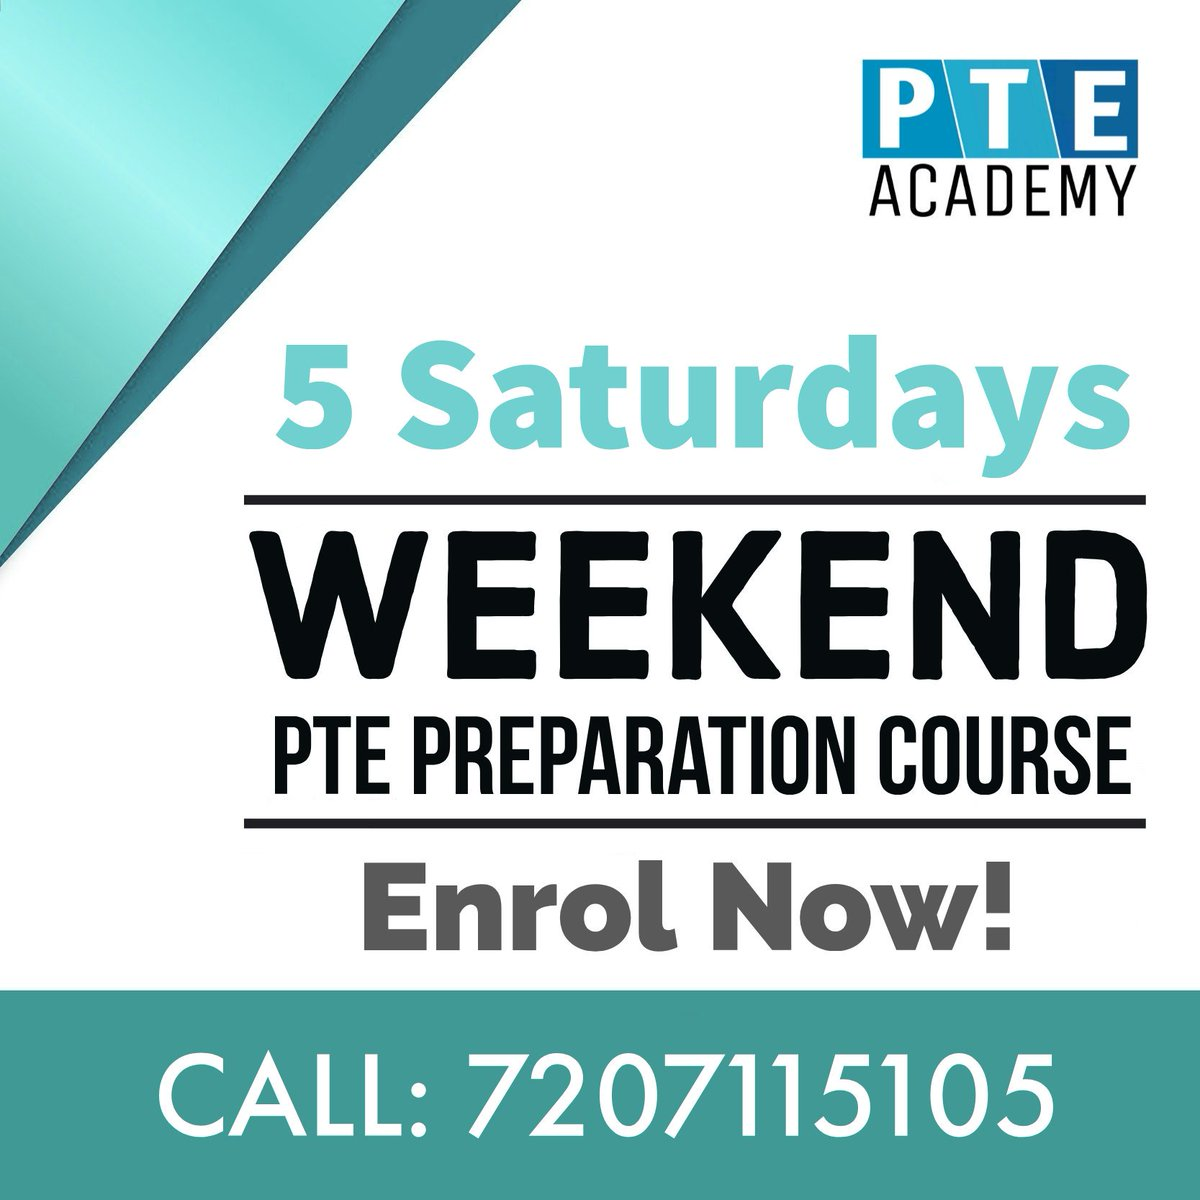 PteAcademy - PTE ACADEMY Twitter Profile | Twitock